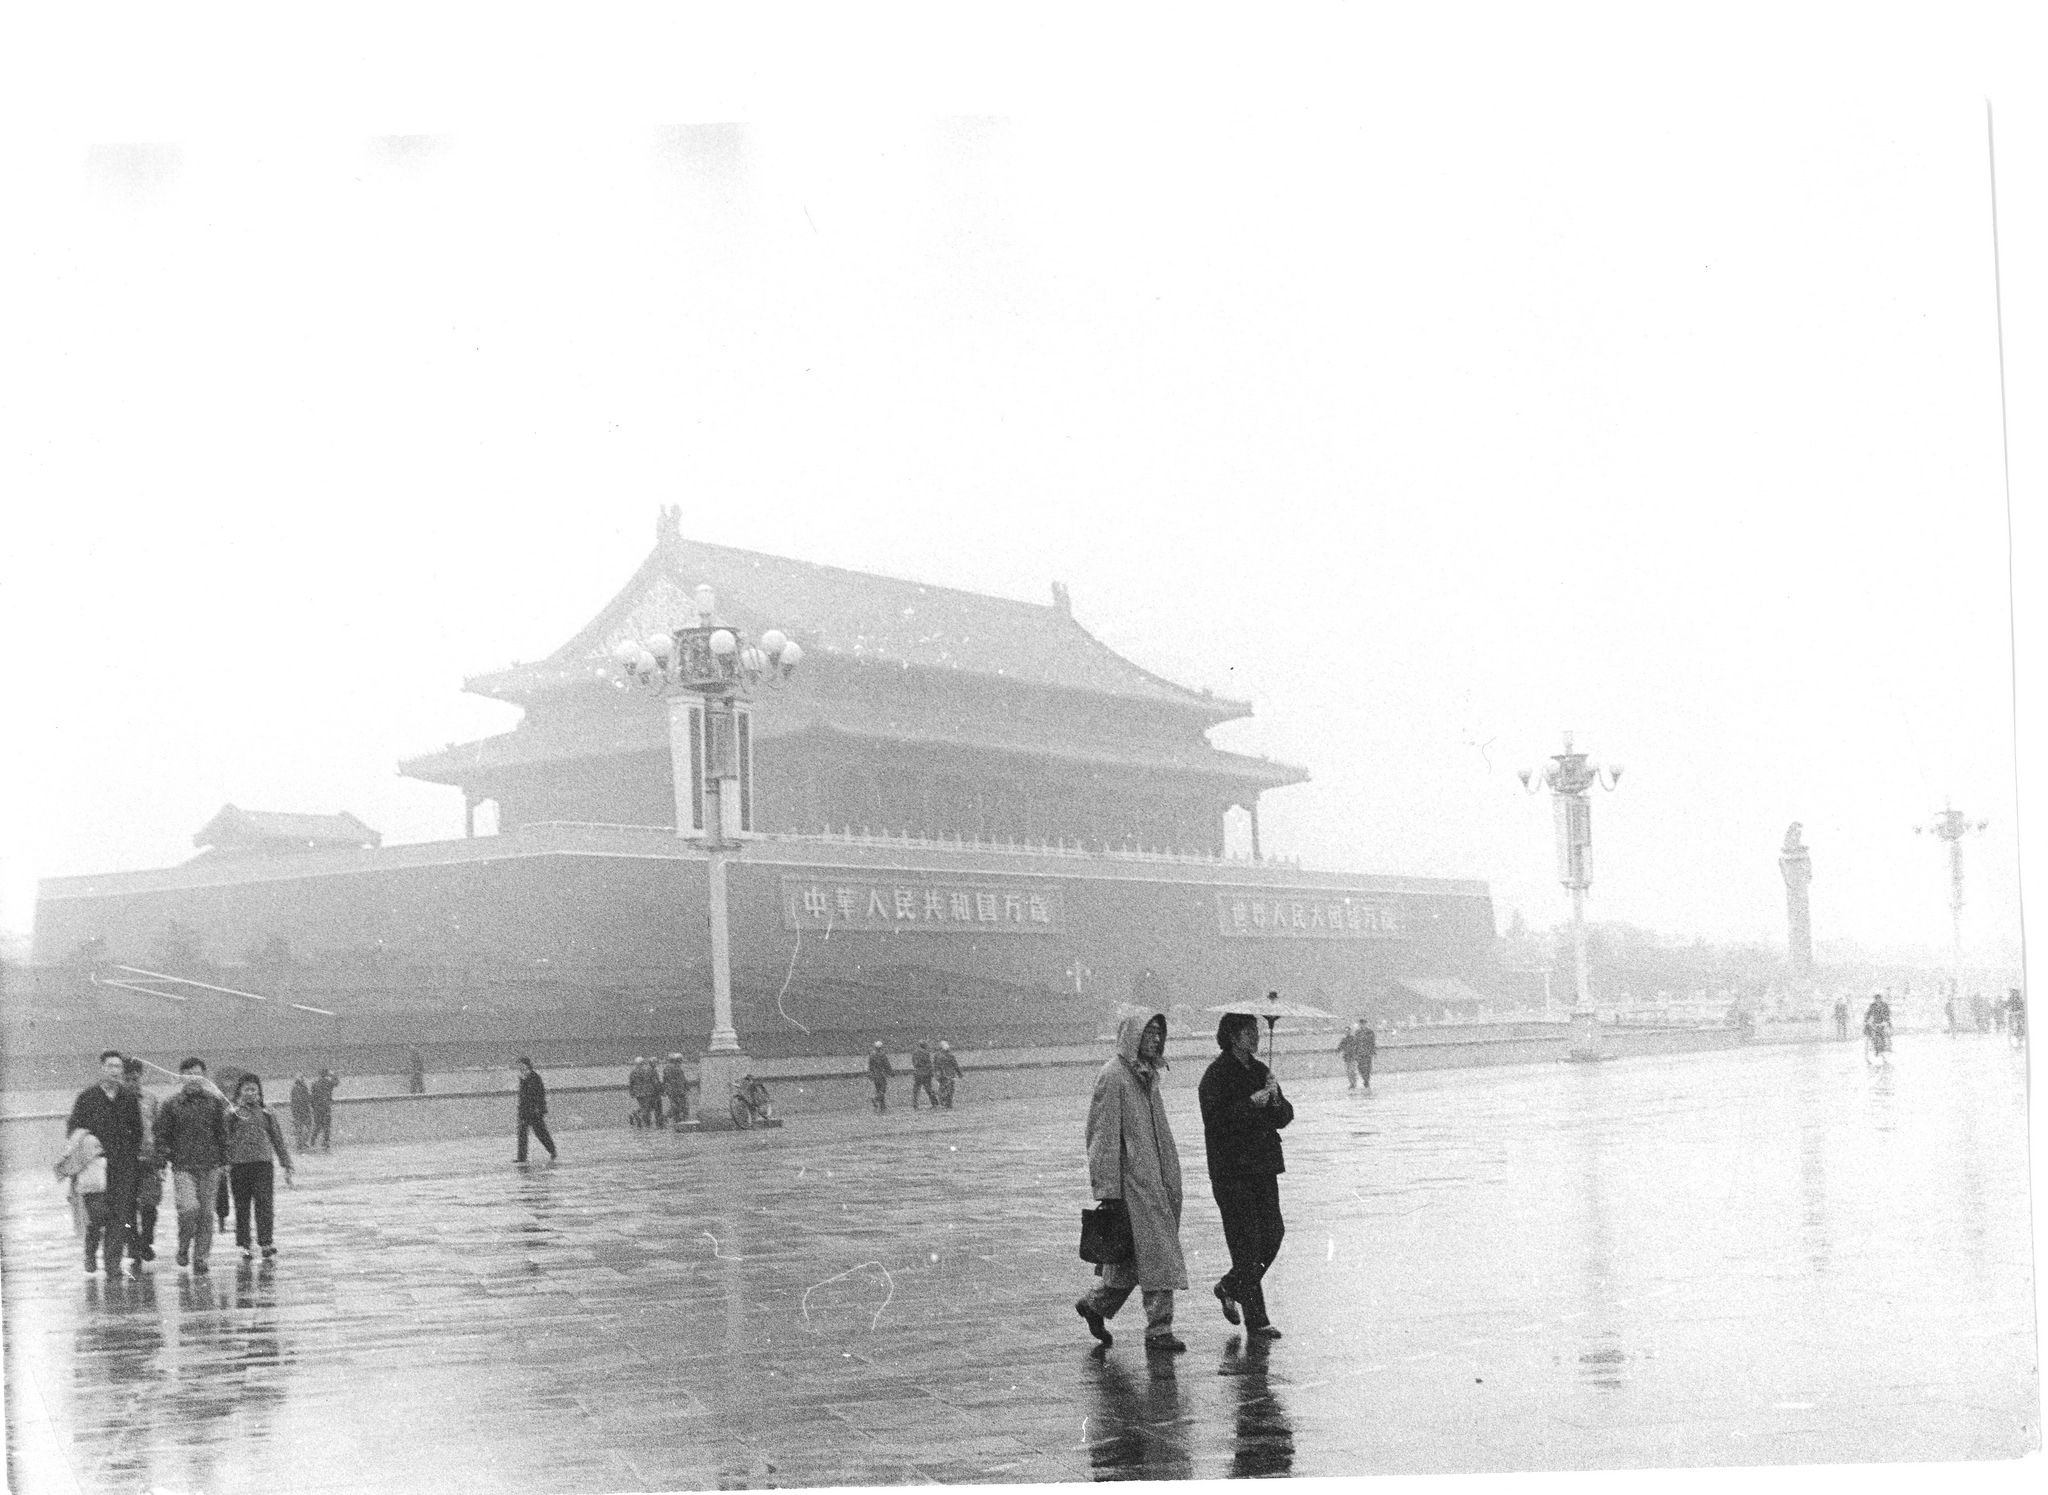 hans_schneider_china_1963_photography_of_china_1.jpg